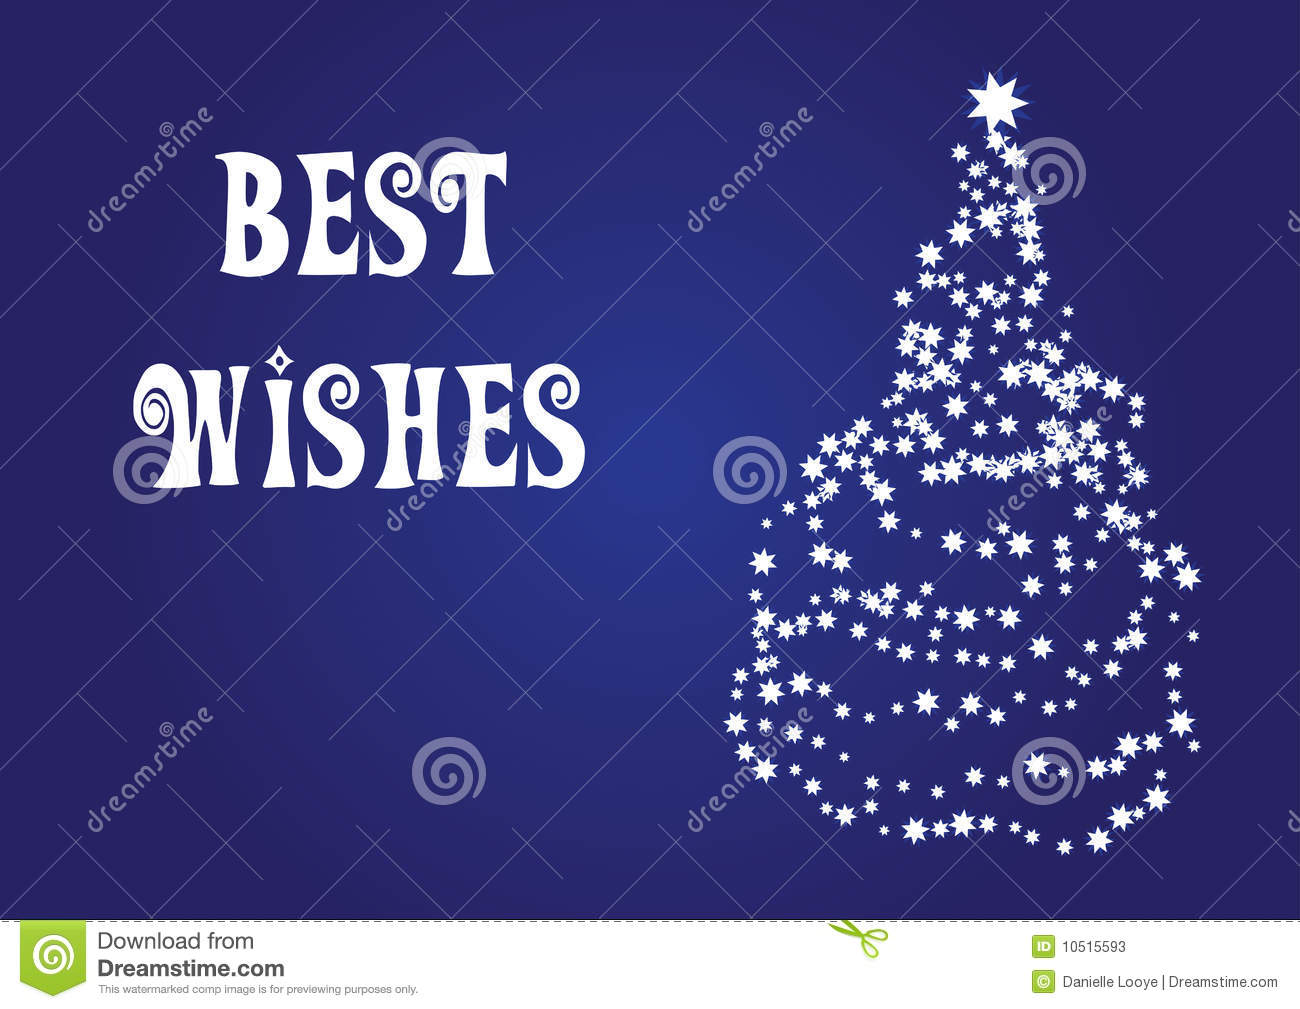 Best Wishes, Christmas Vector Card Stock Vector - Illustration of ...